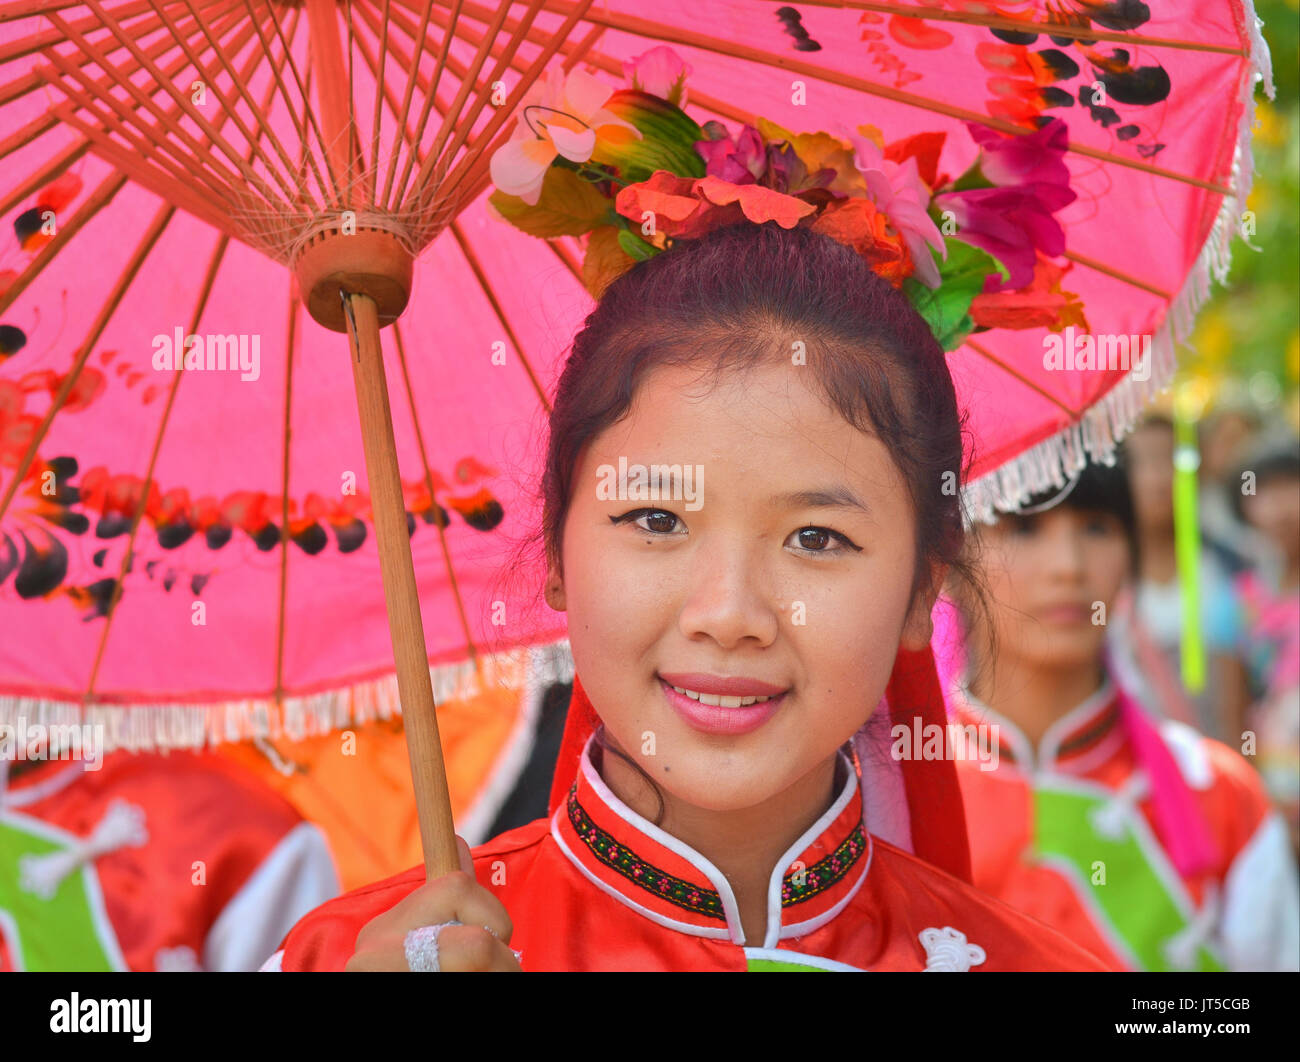 Smiling Thai Chinese Girl in Traditional Dress with Red Parasol (III), Northern Thailand. - Stock Image